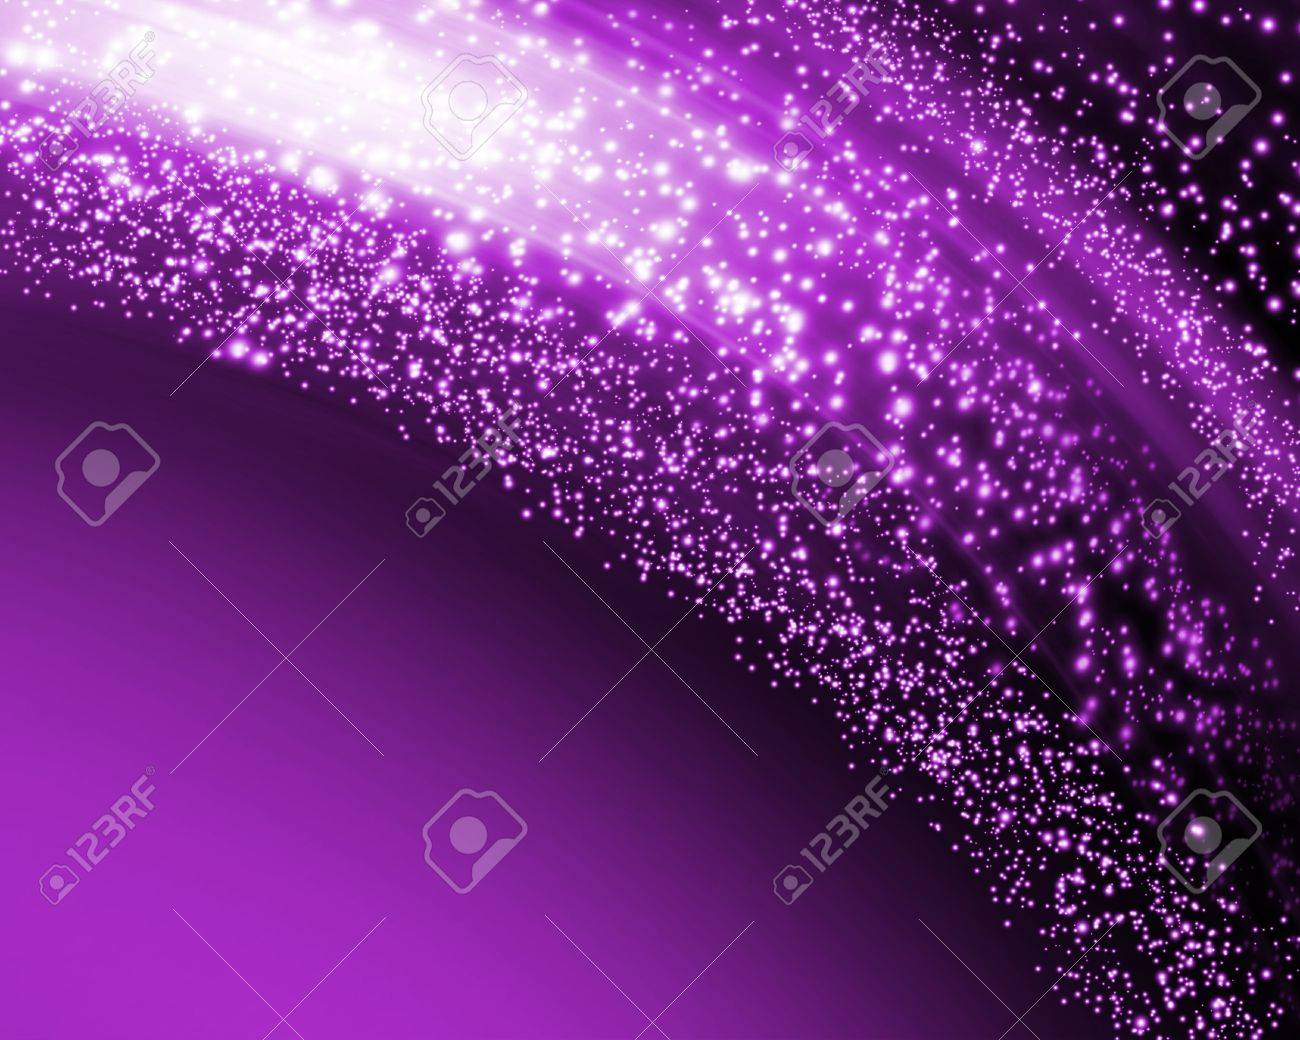 Abstract glowing background with stars Stock Photo - 11818708